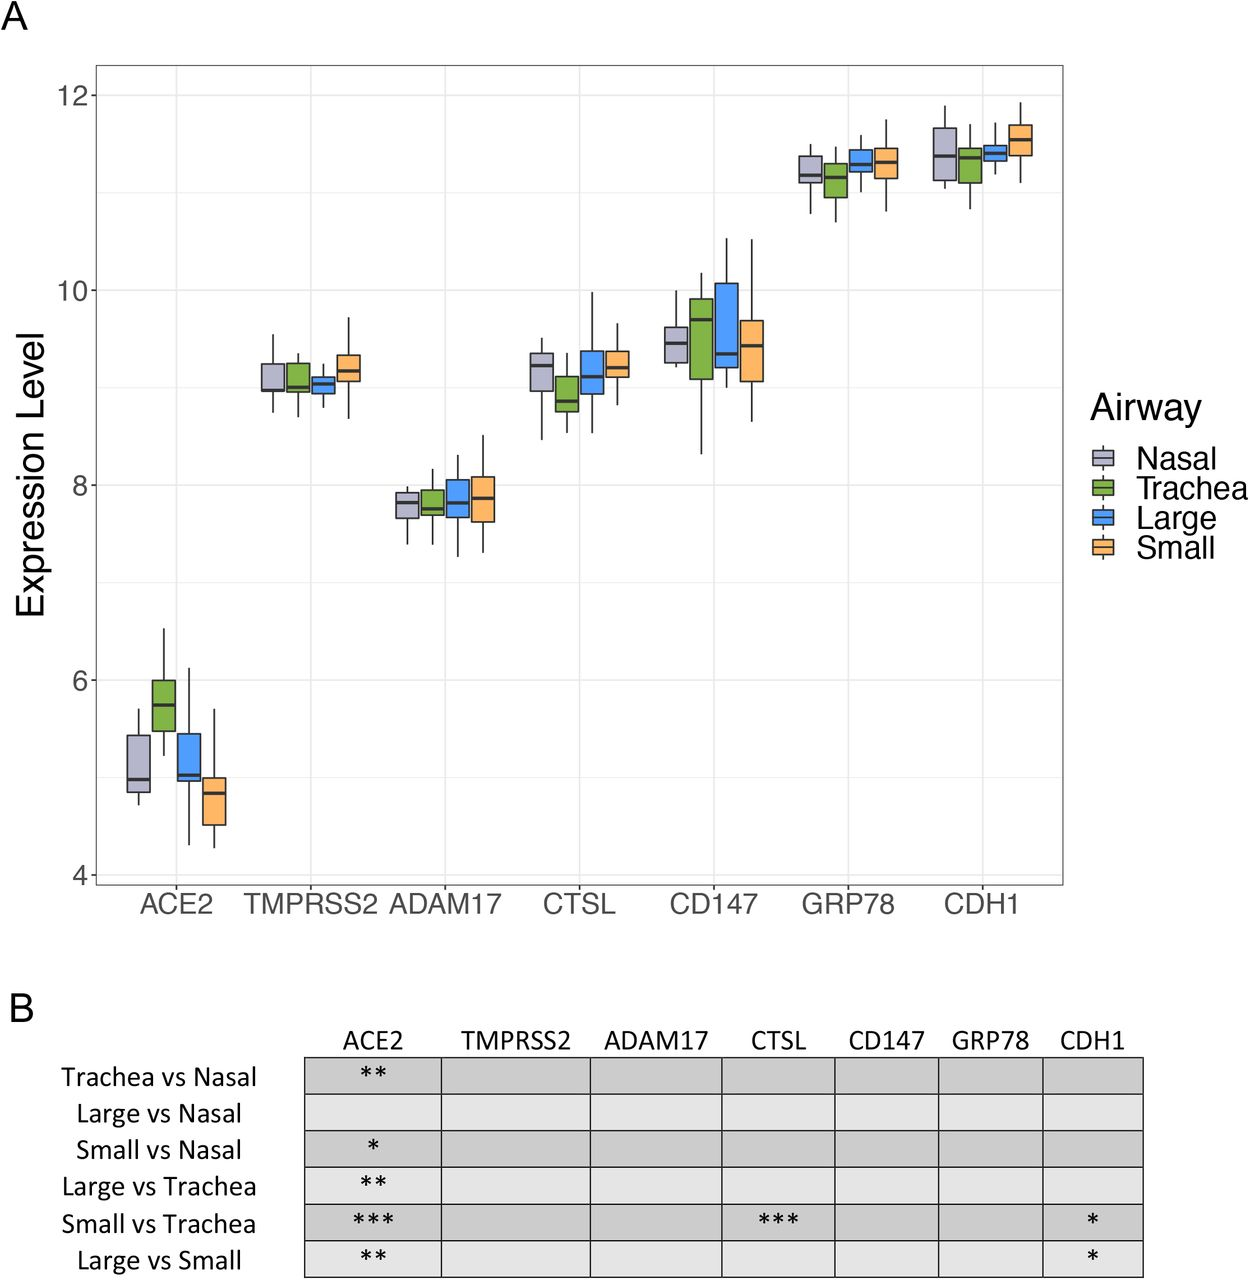 Microarray expression profiles of candidate SARS-CoV-2 receptor genes in upper and lower airways. A: Normalized log 2 expression levels for ACE2, TMPRSS2, ADAM17, CTSL, CD147 , and GRP78 genes compared across the upper airway (nasal, grey) and lower airways (trachea, green; large airway, blue; small airway, orange). CDH1 gene expression level is included as a positive control. B: Statistical values for comparisons for each gene at each airway generation. *= p